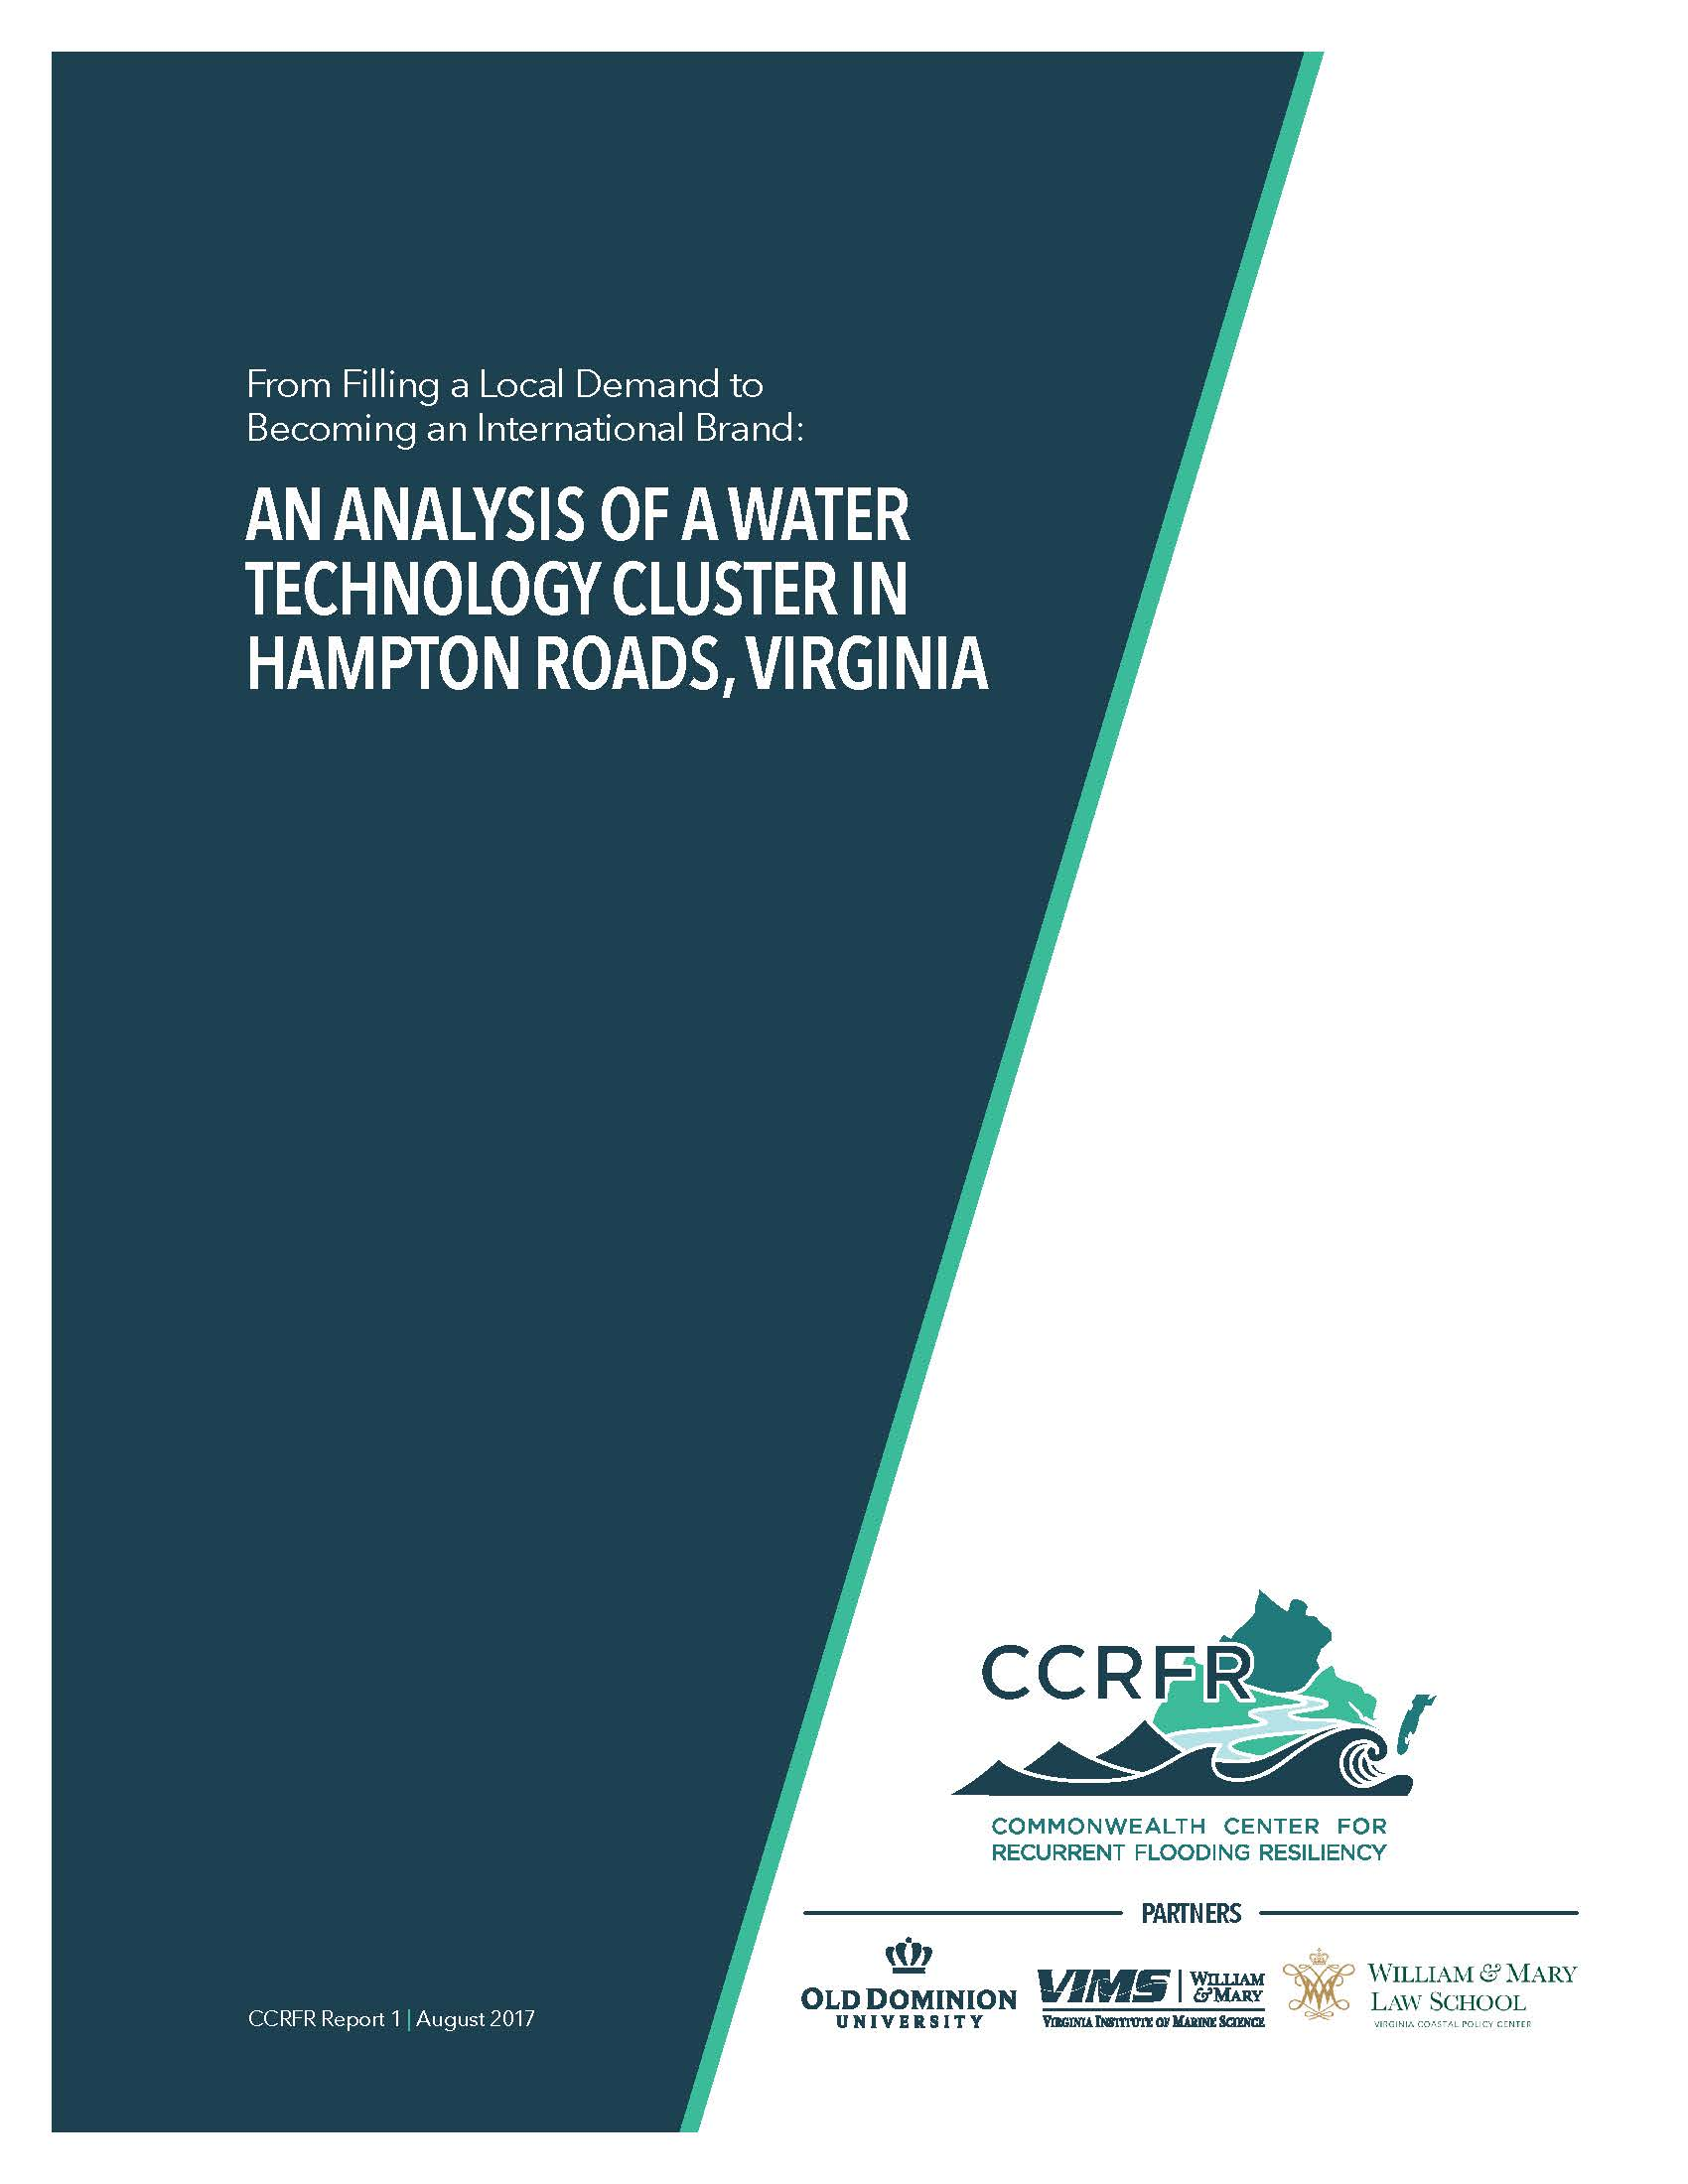 An Analysis of Water Technology Cluster in Hampton Roads, Virginia